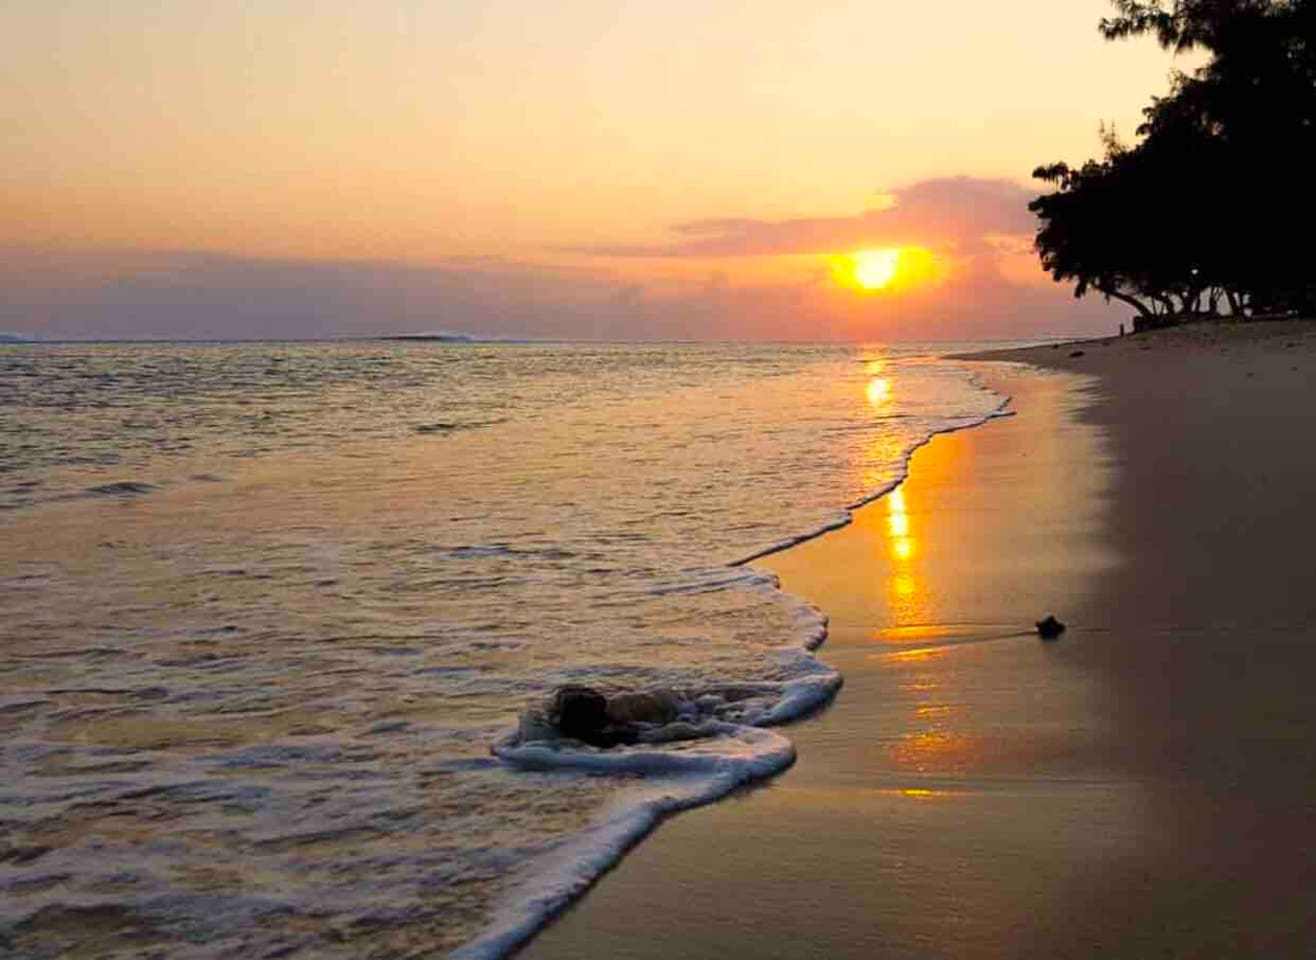 Enjoy the beautiful sunset and make your holiday memorable.